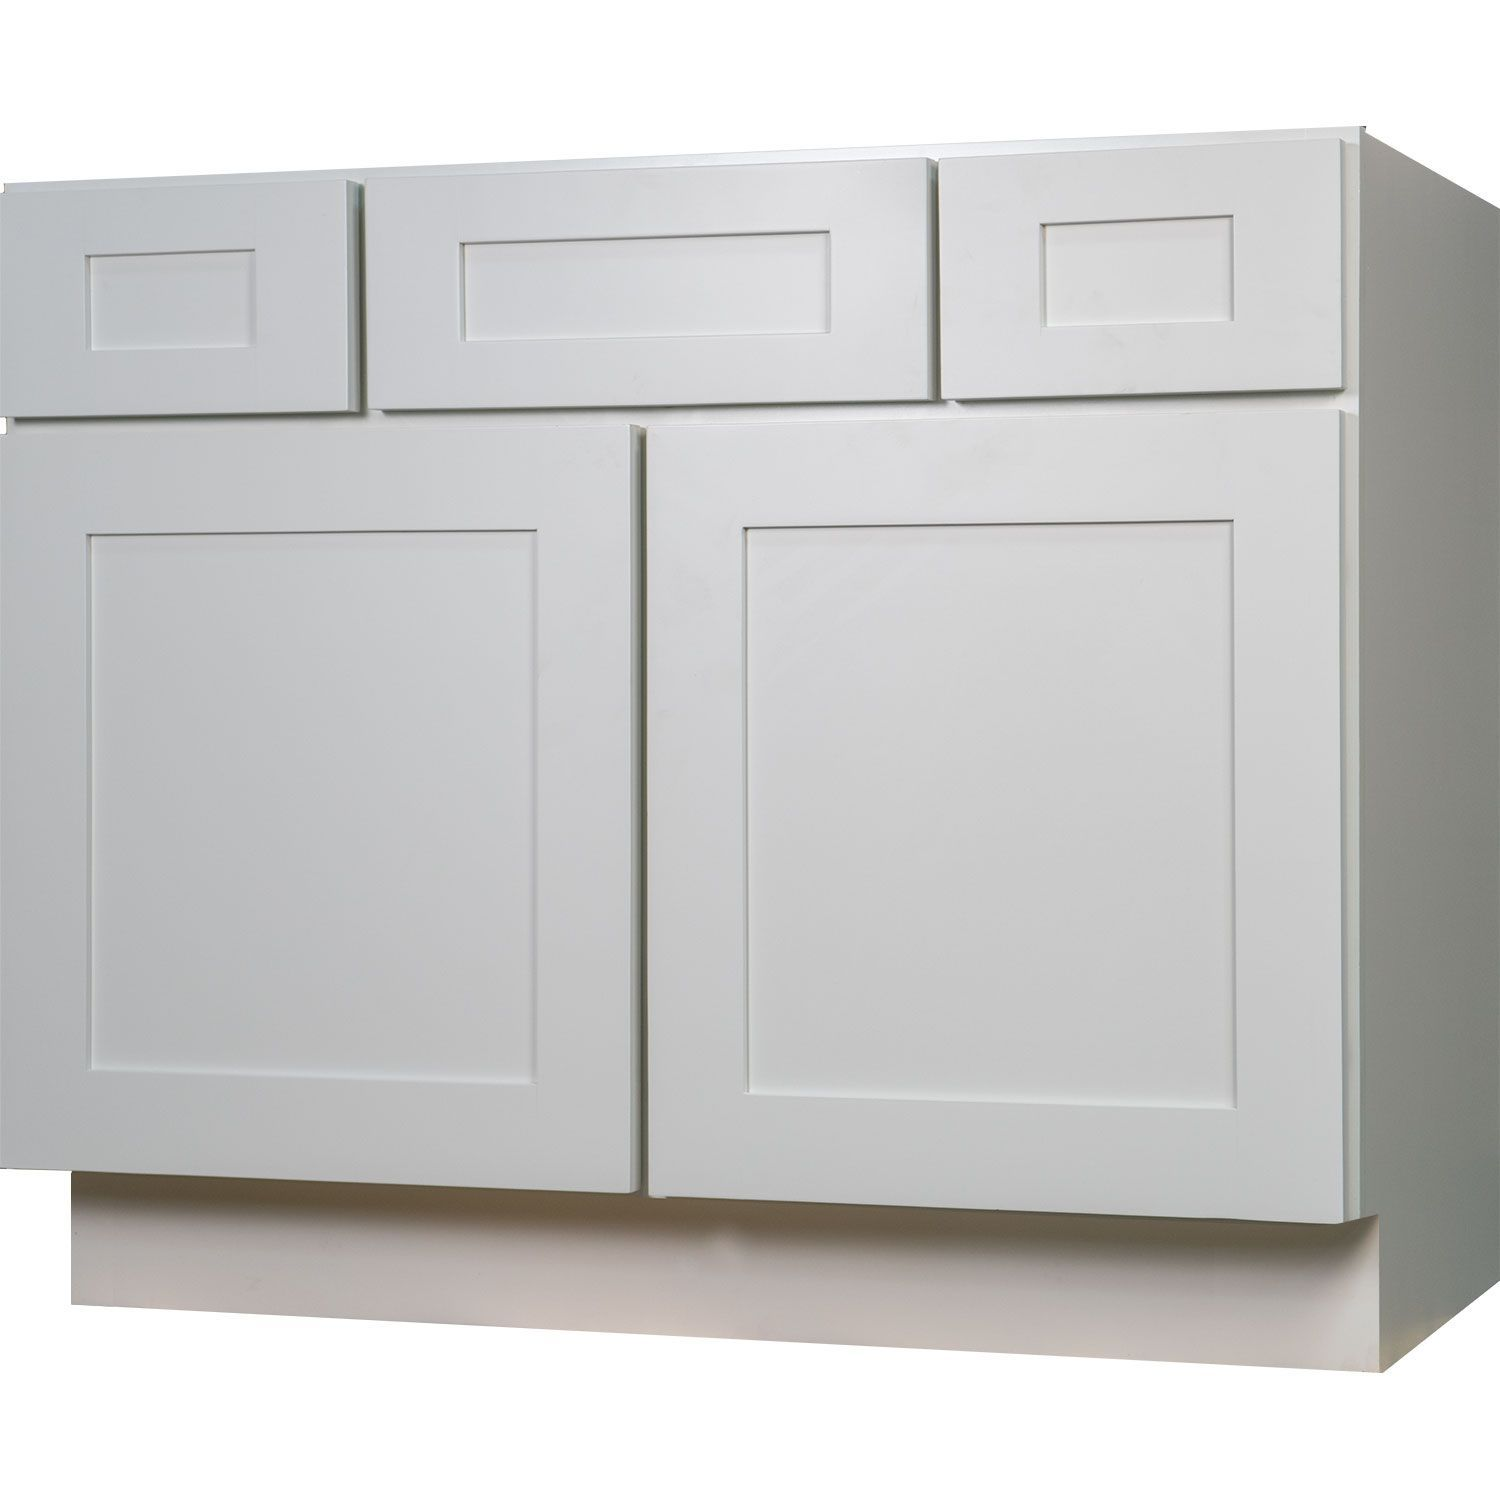 Bathroom sink cabinets white - 24 Inch Full Height Door Base Cabinet In Shaker Espresso With 2 Soft Close Doors 1 Shelf 24